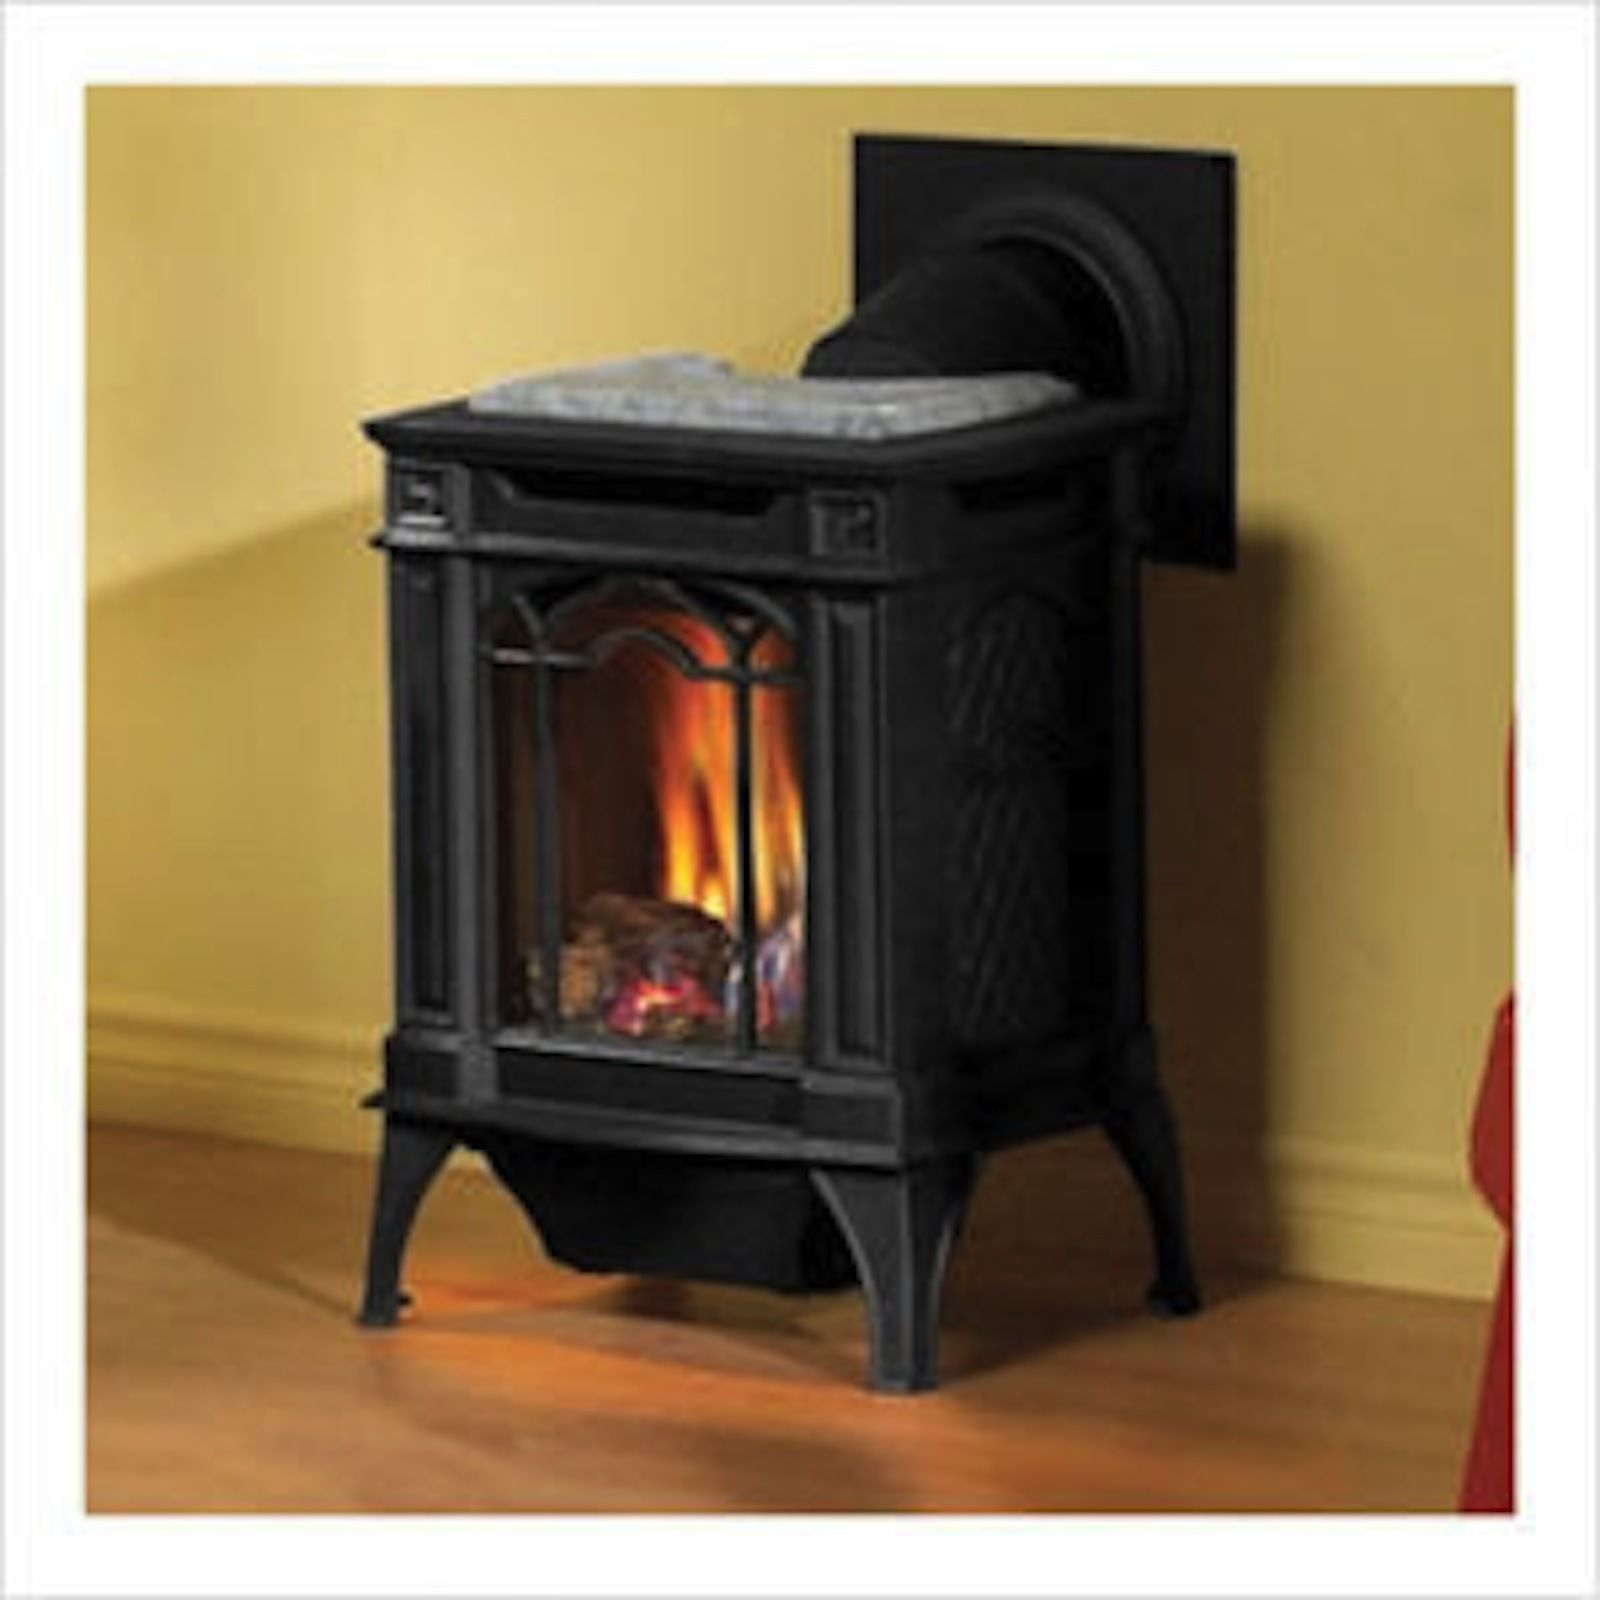 Electric Fireplace Troubleshooting Awesome Propane Fireplace Problems with Propane Fireplace